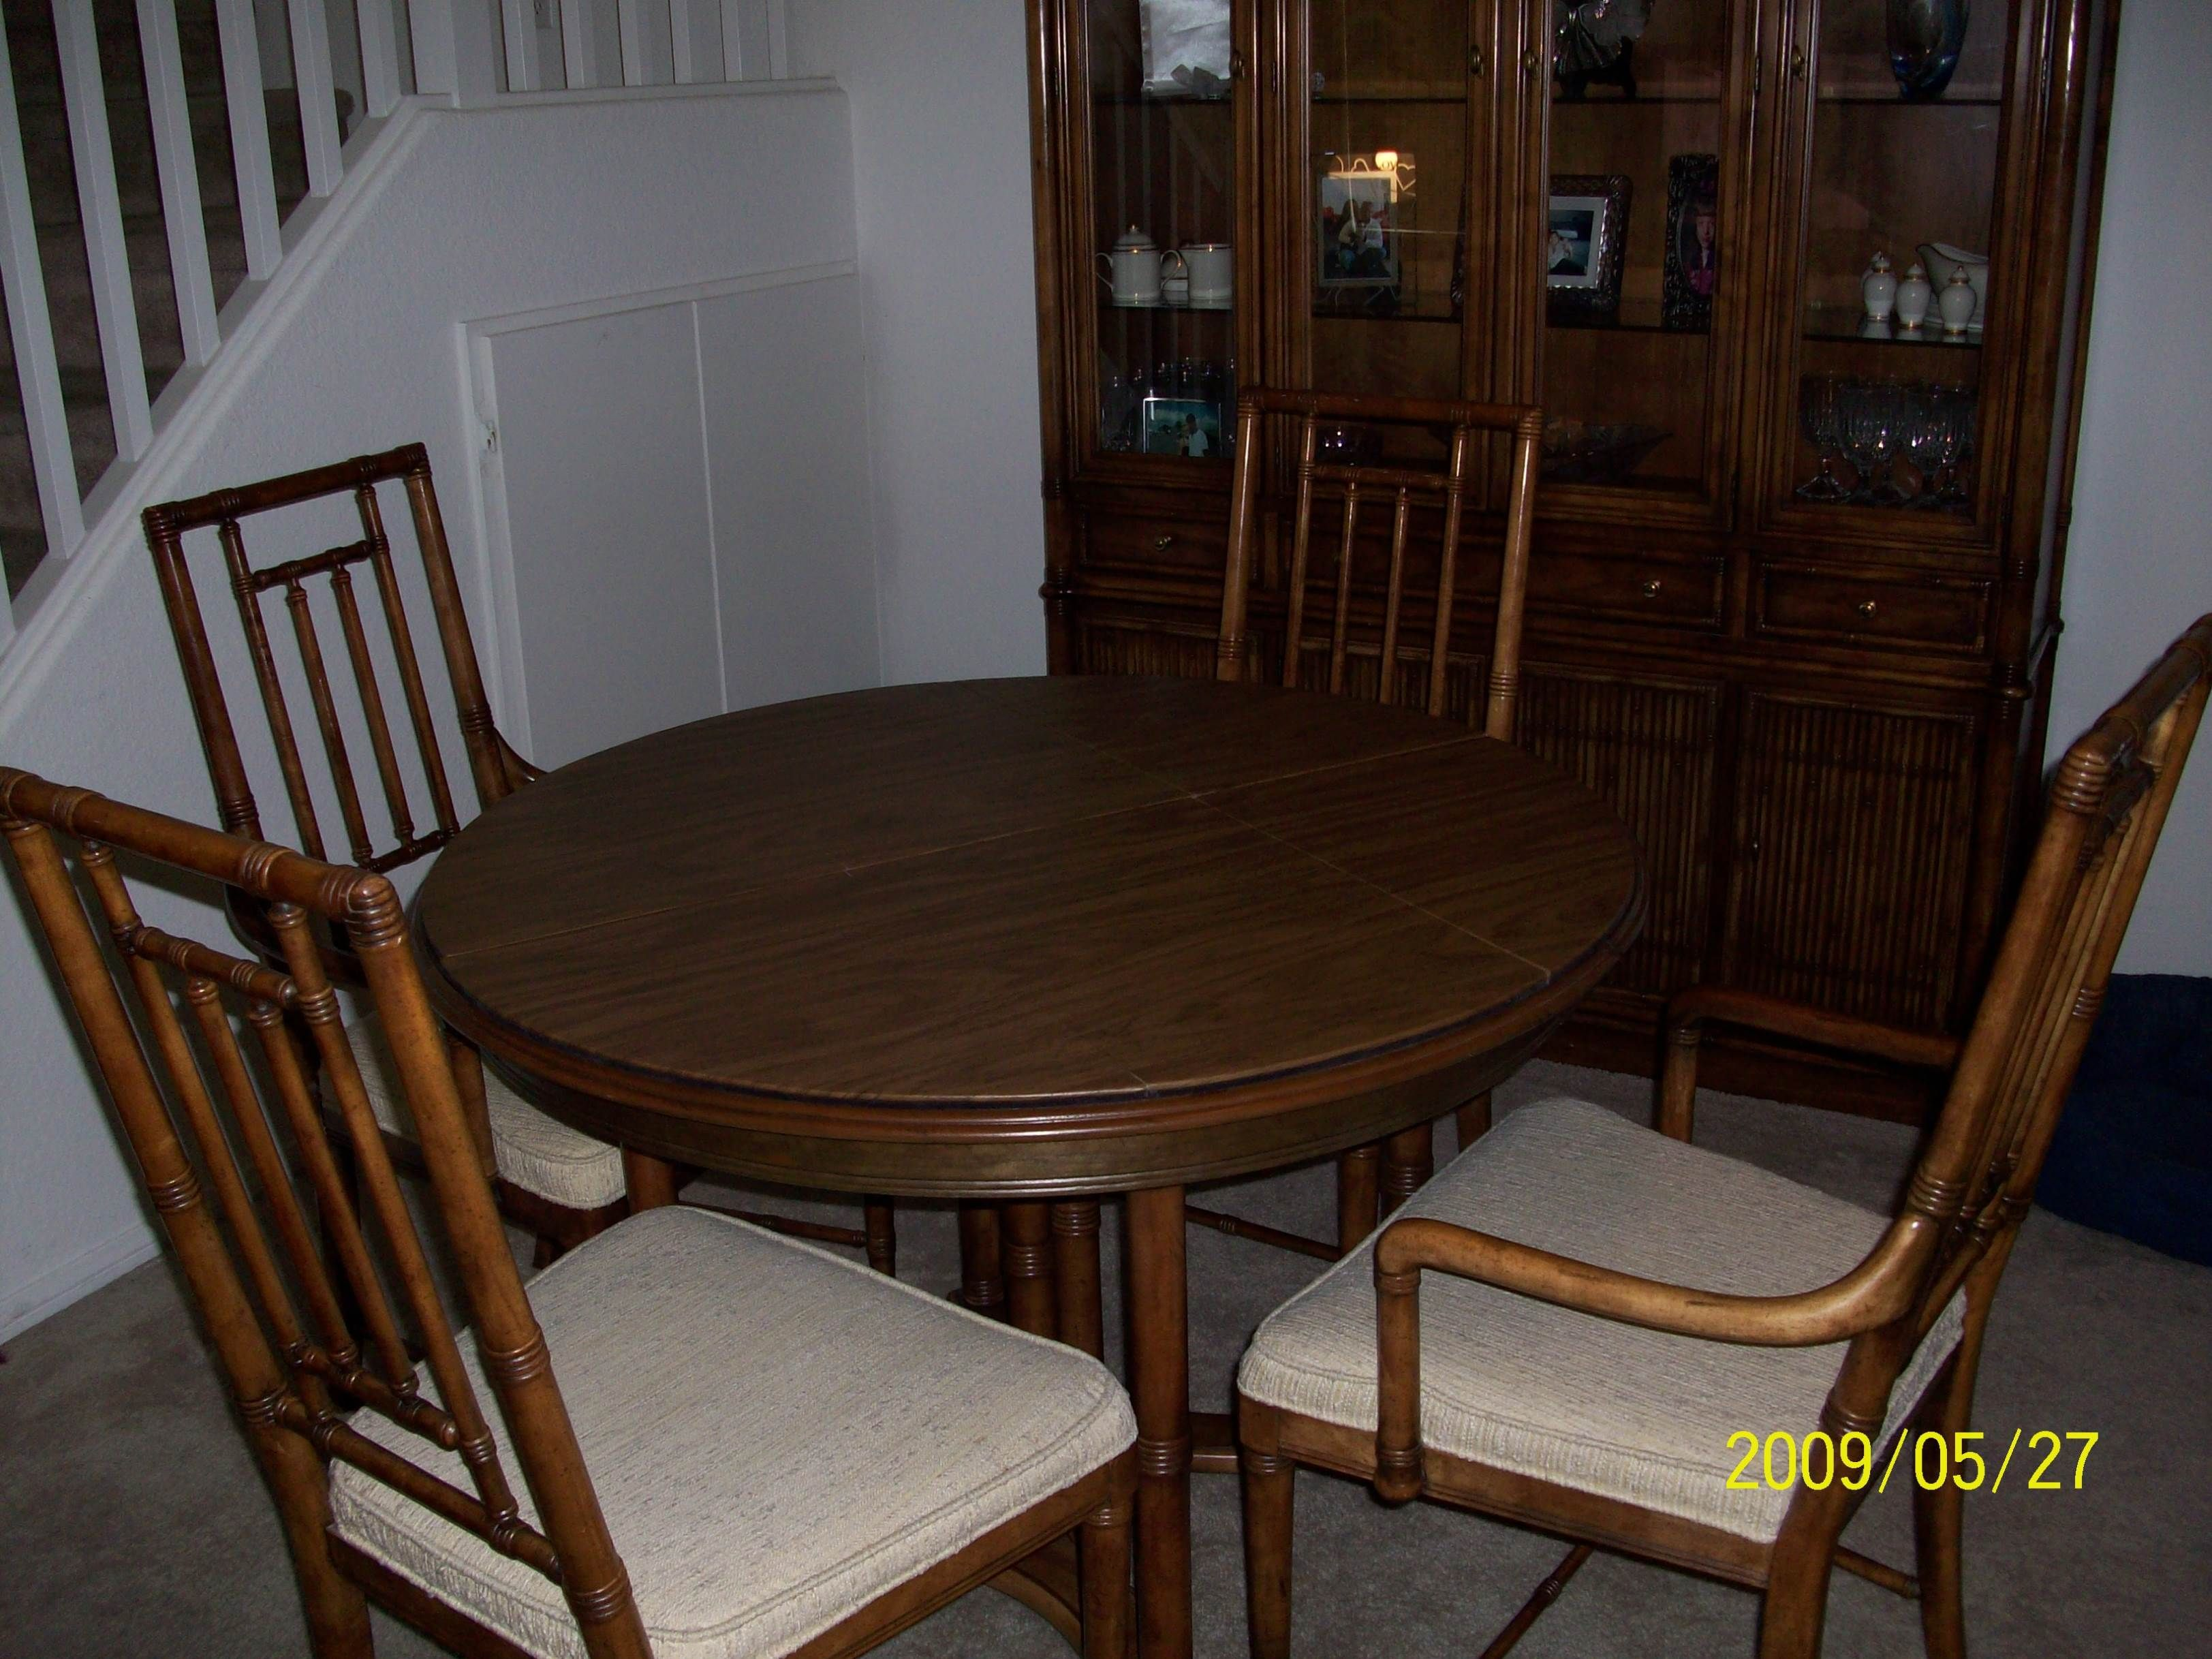 picture gallery the concept asian style dining table ideas room